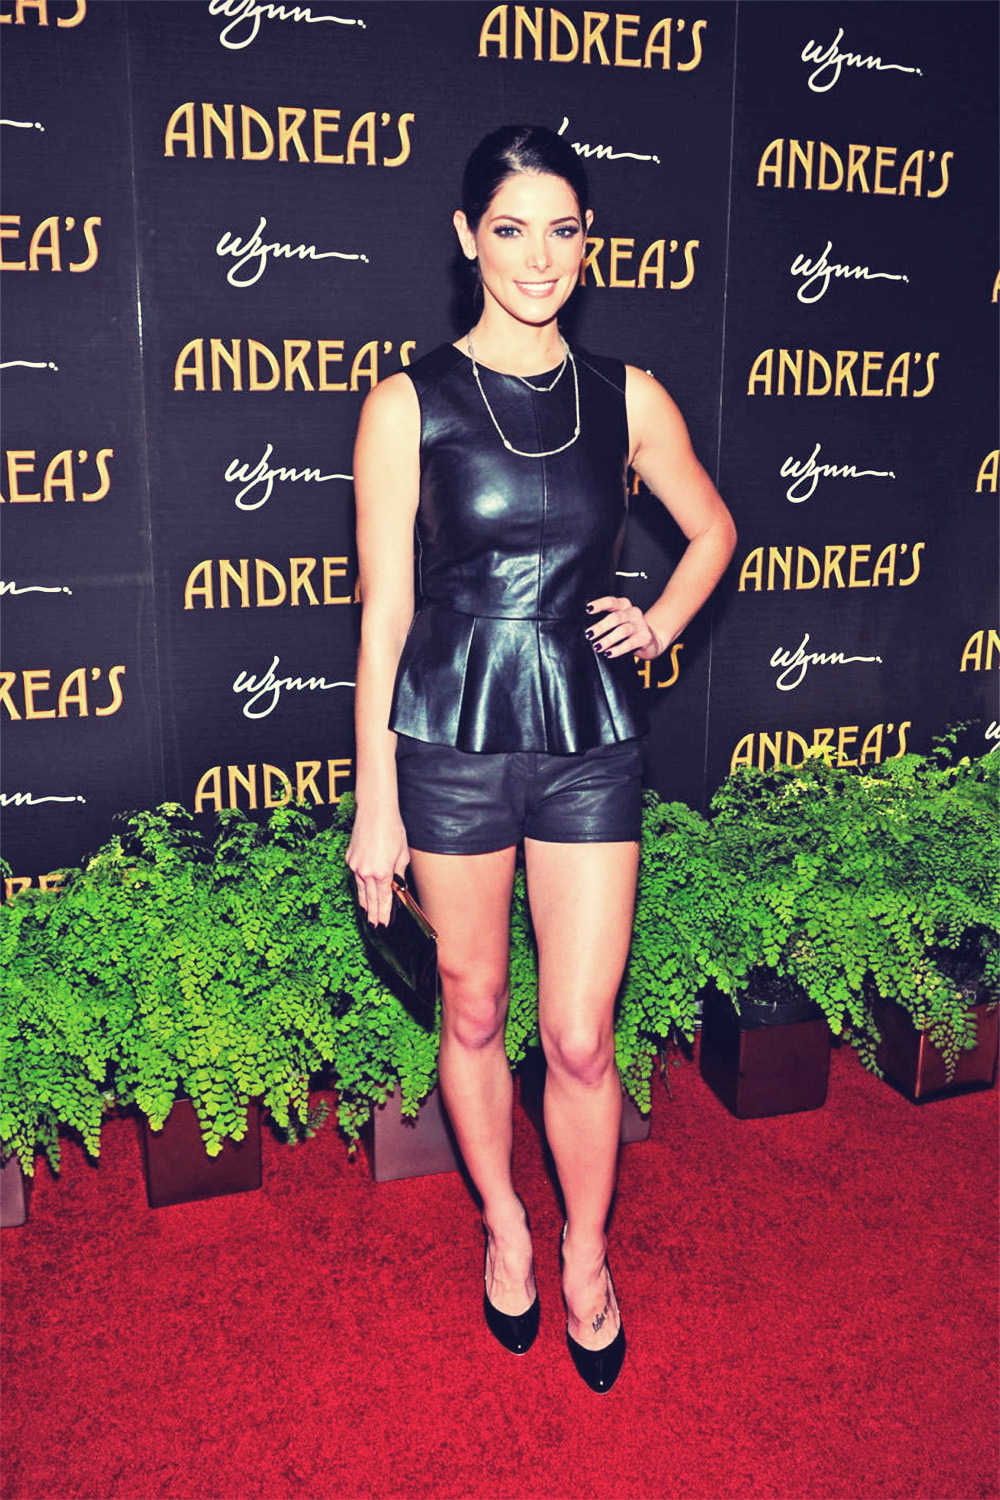 Ashley Greene attends Andrea's Grand Opening